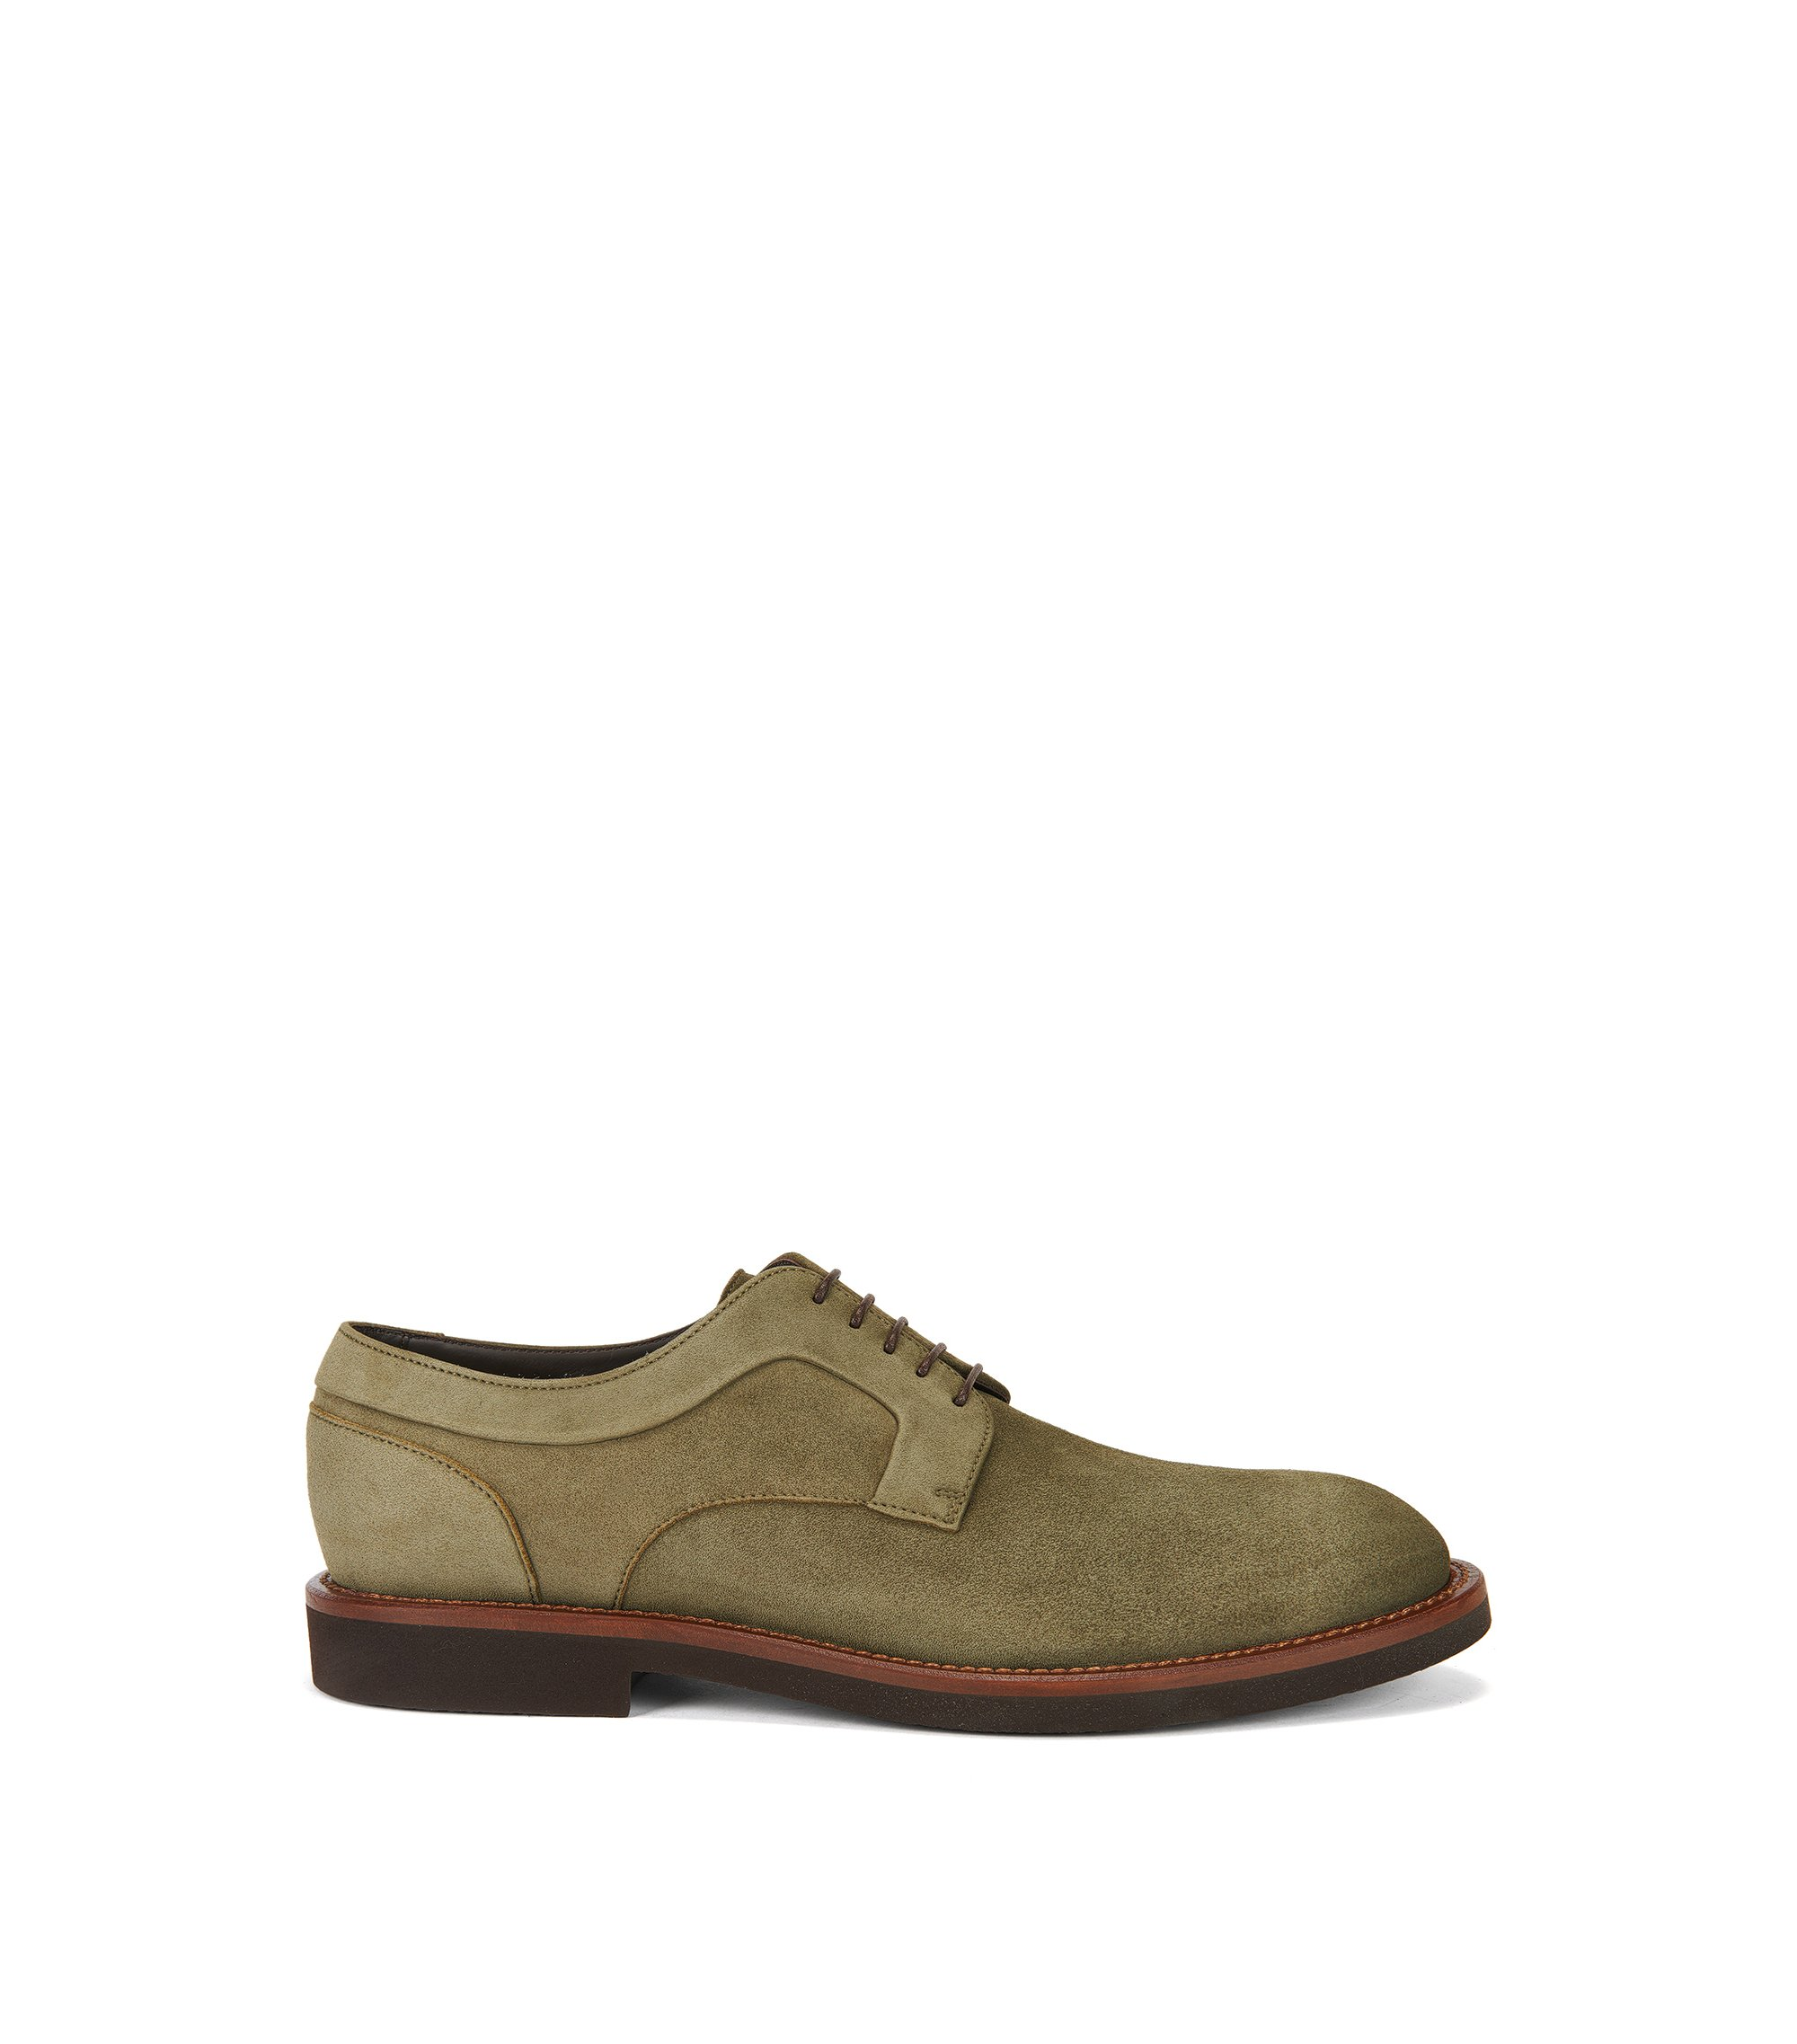 Nubuck Leather Derby Shoe | Eden Derb Sdg, Green